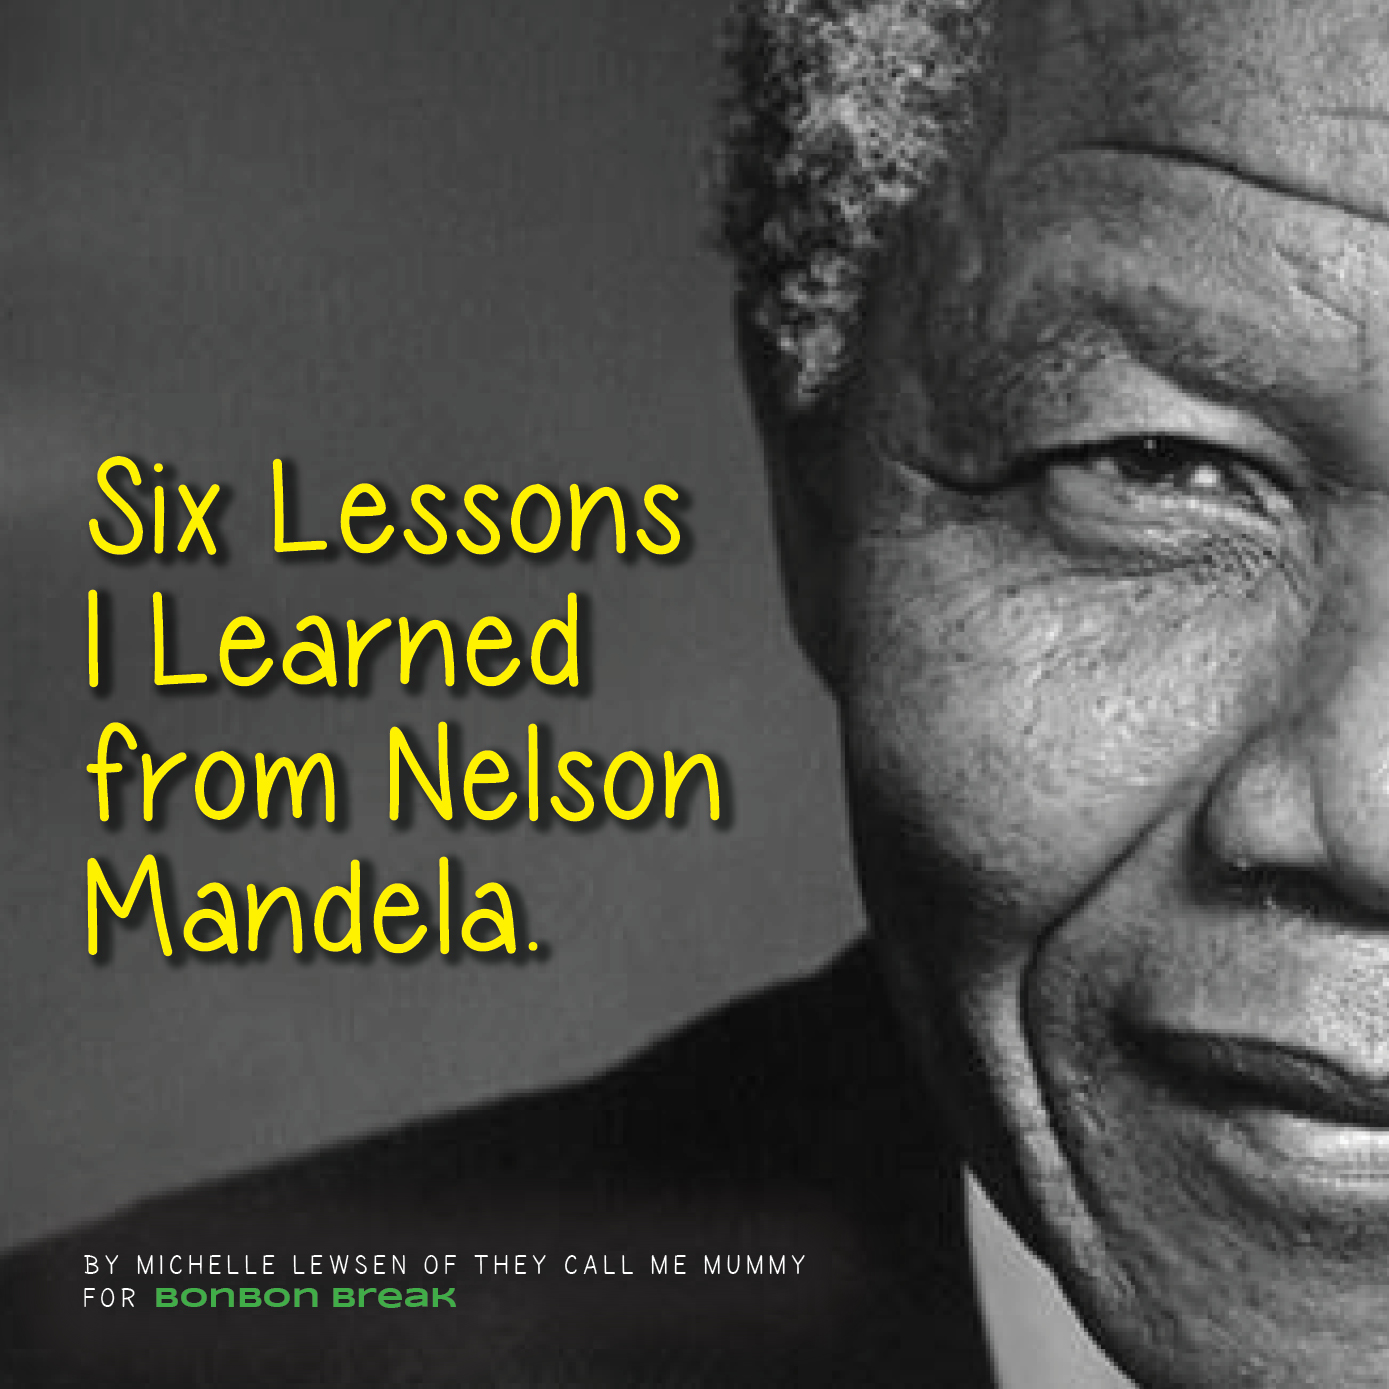 Quotes Nelson Mandela Six Lessons I Learned From Nelson Mandela  Bonbon Break